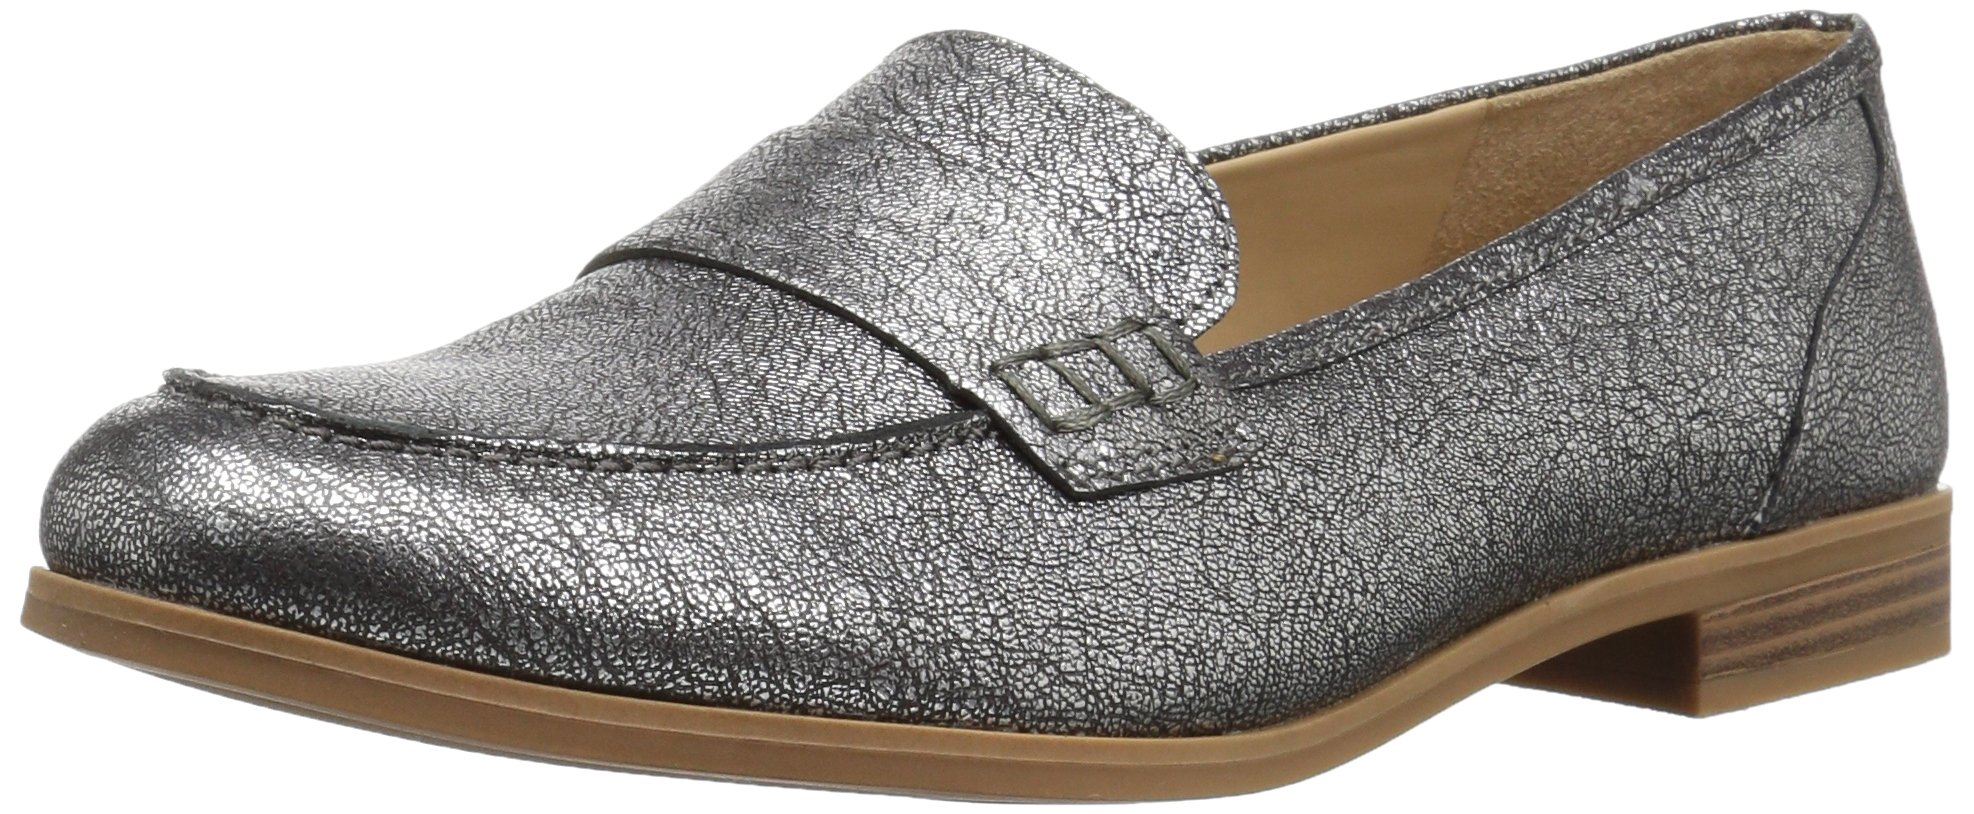 Naturalizer Women's Veronica Slip-on Loafer, Silver, 4 M US